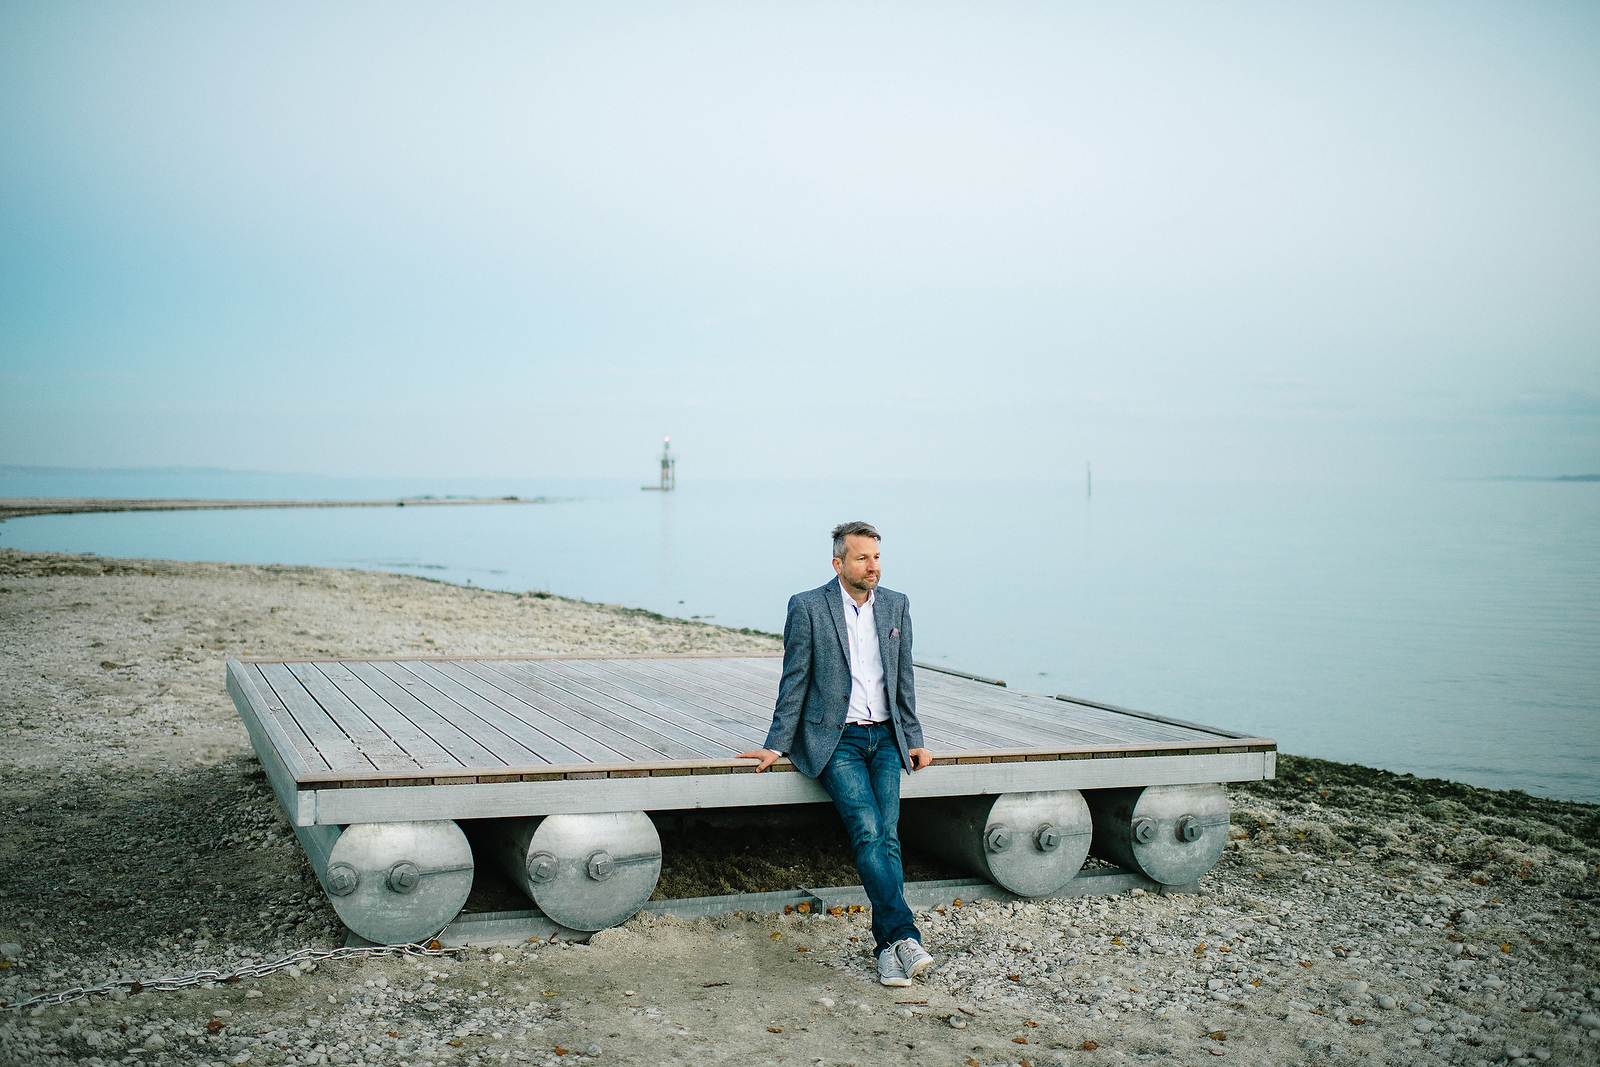 Fotograf Konstanz - Business Portrait Shooting at Lake Constance  - 8 -